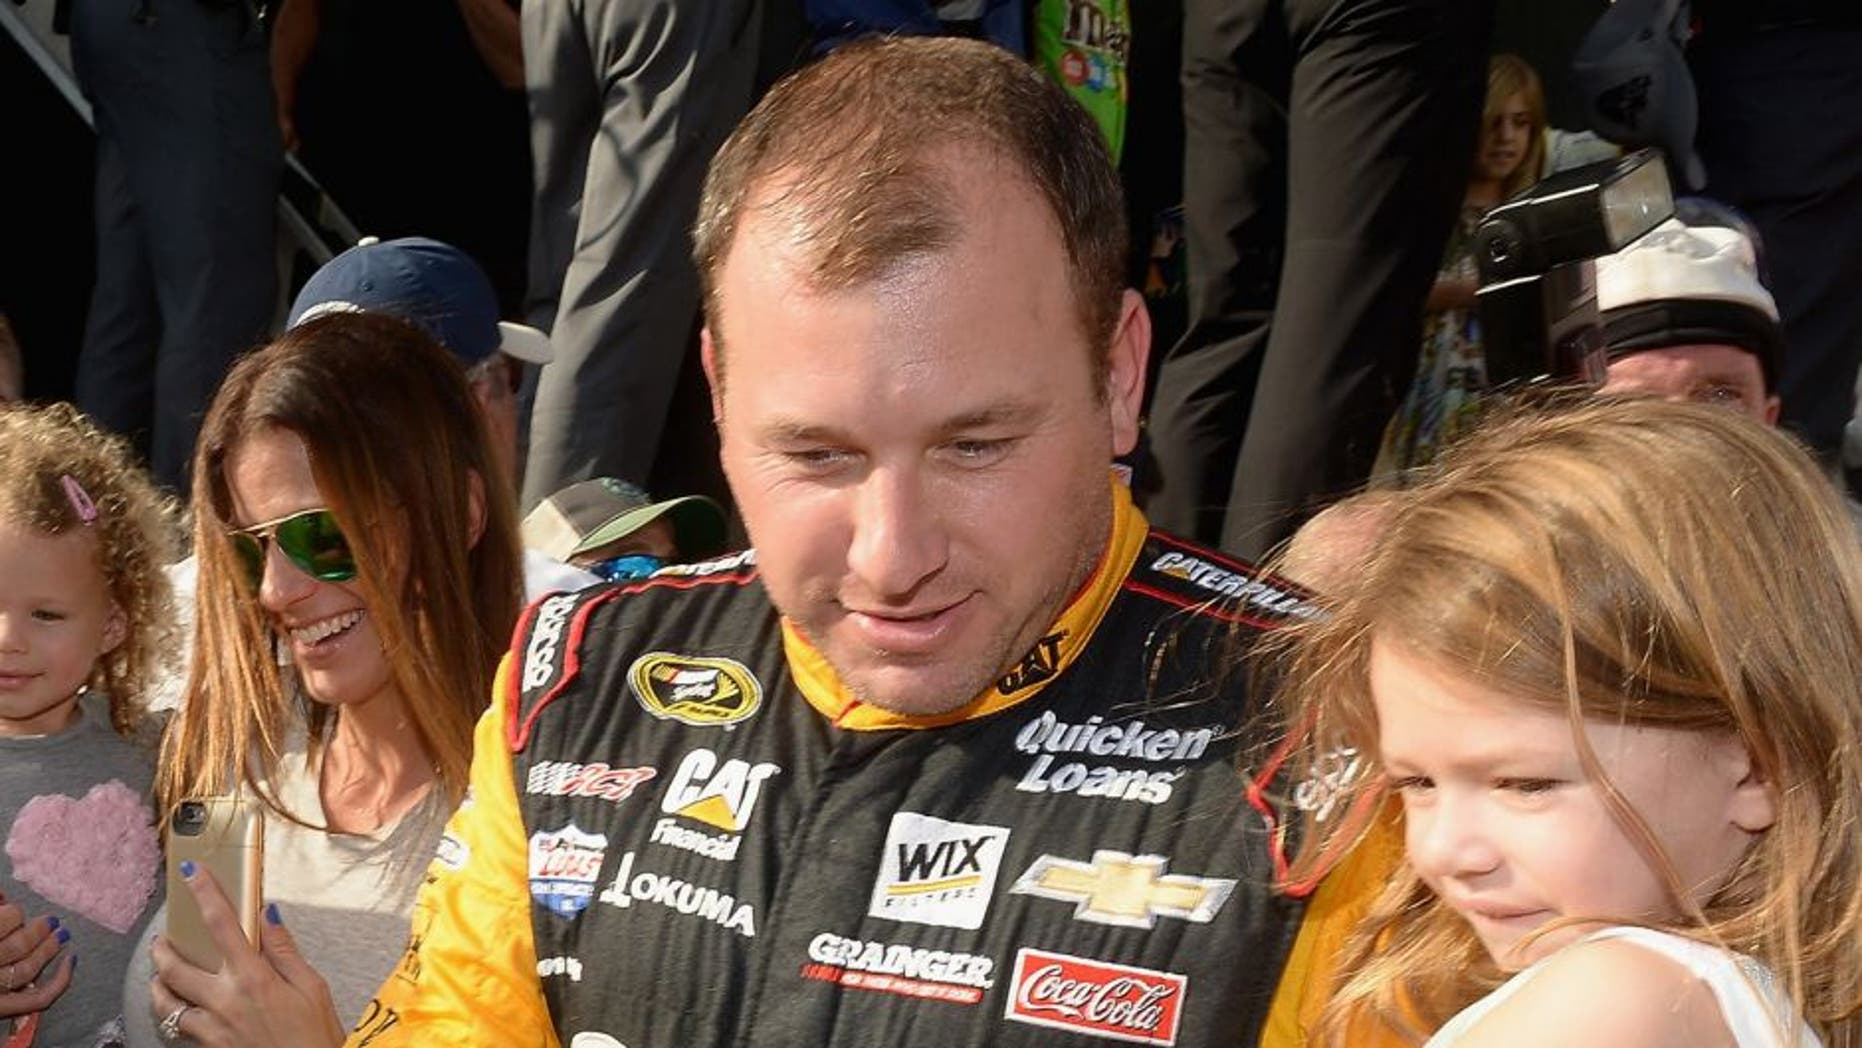 HOMESTEAD, FL - NOVEMBER 22: Ryan Newman and family meet the Minions at NASCAR Ford Championship Weekend in celebration of Minions on digital HD on November 24 and Blu-ray & DVD on December 8. (Photo by Gustavo Caballero/Getty Images For Universal Pictures Home Entertainment)